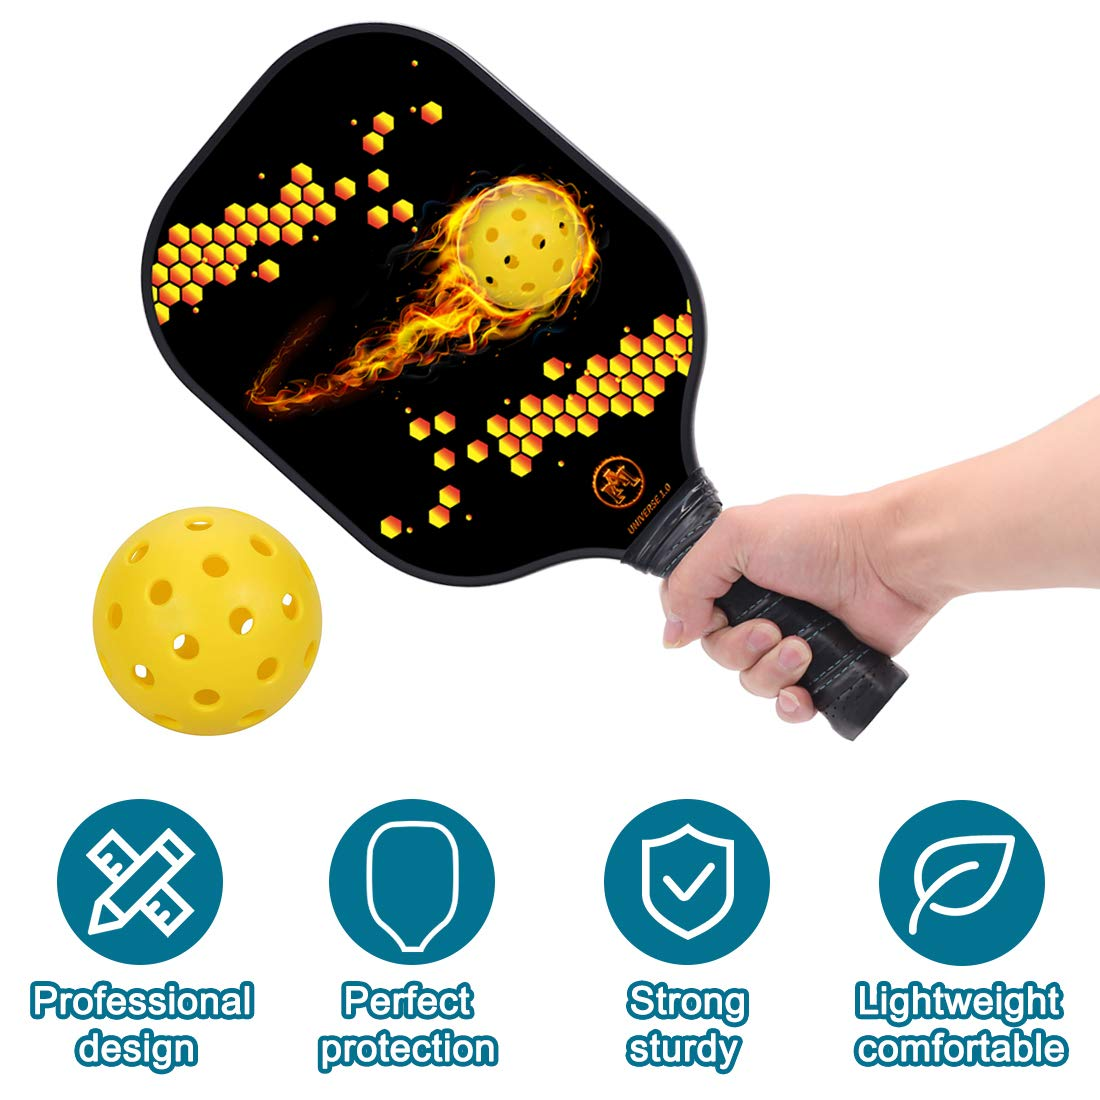 "Y YOOMALL Pickleball Paddle, Graphite Carbon Fiber Surface, Honeycomb Polymer Core, 8oz Midweight 4.25"" Cushion Comfort Grip, Pickleball Racket with ..."